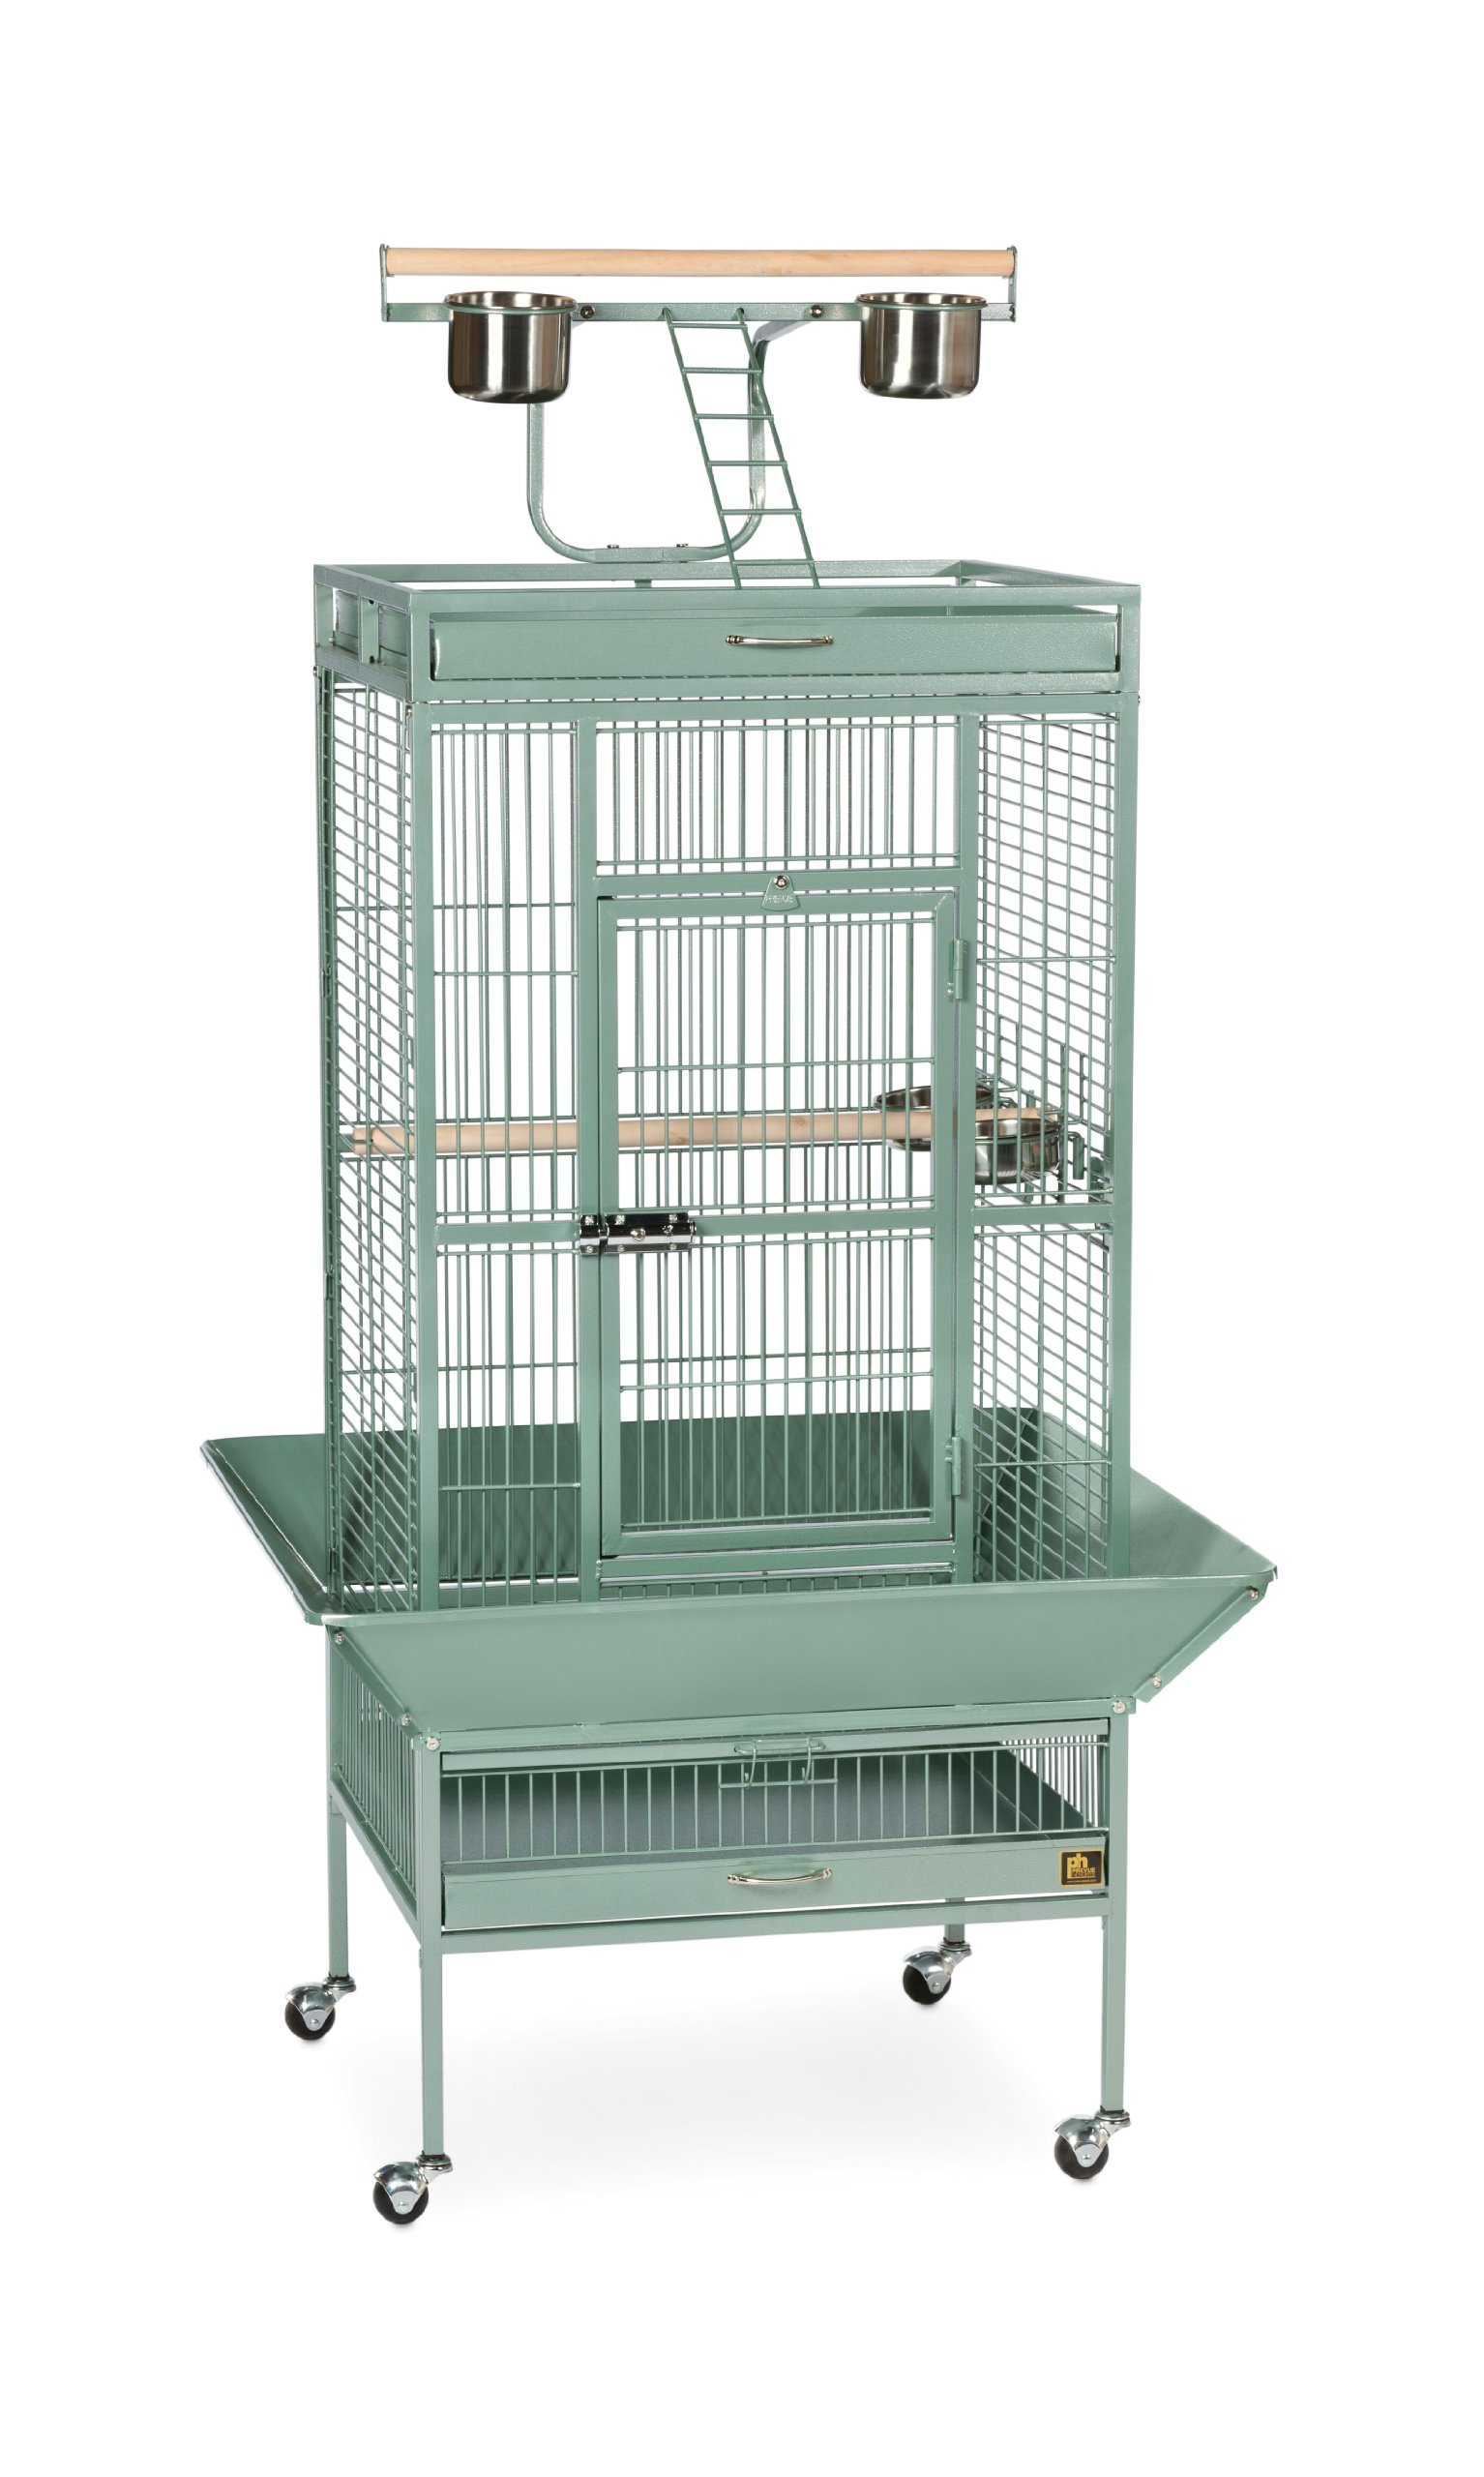 Prevue Pet Products Wrought Iron Select Bird Cage 3152SAGE Sage Green, 24-Inch by 20-Inch by 60-Inch